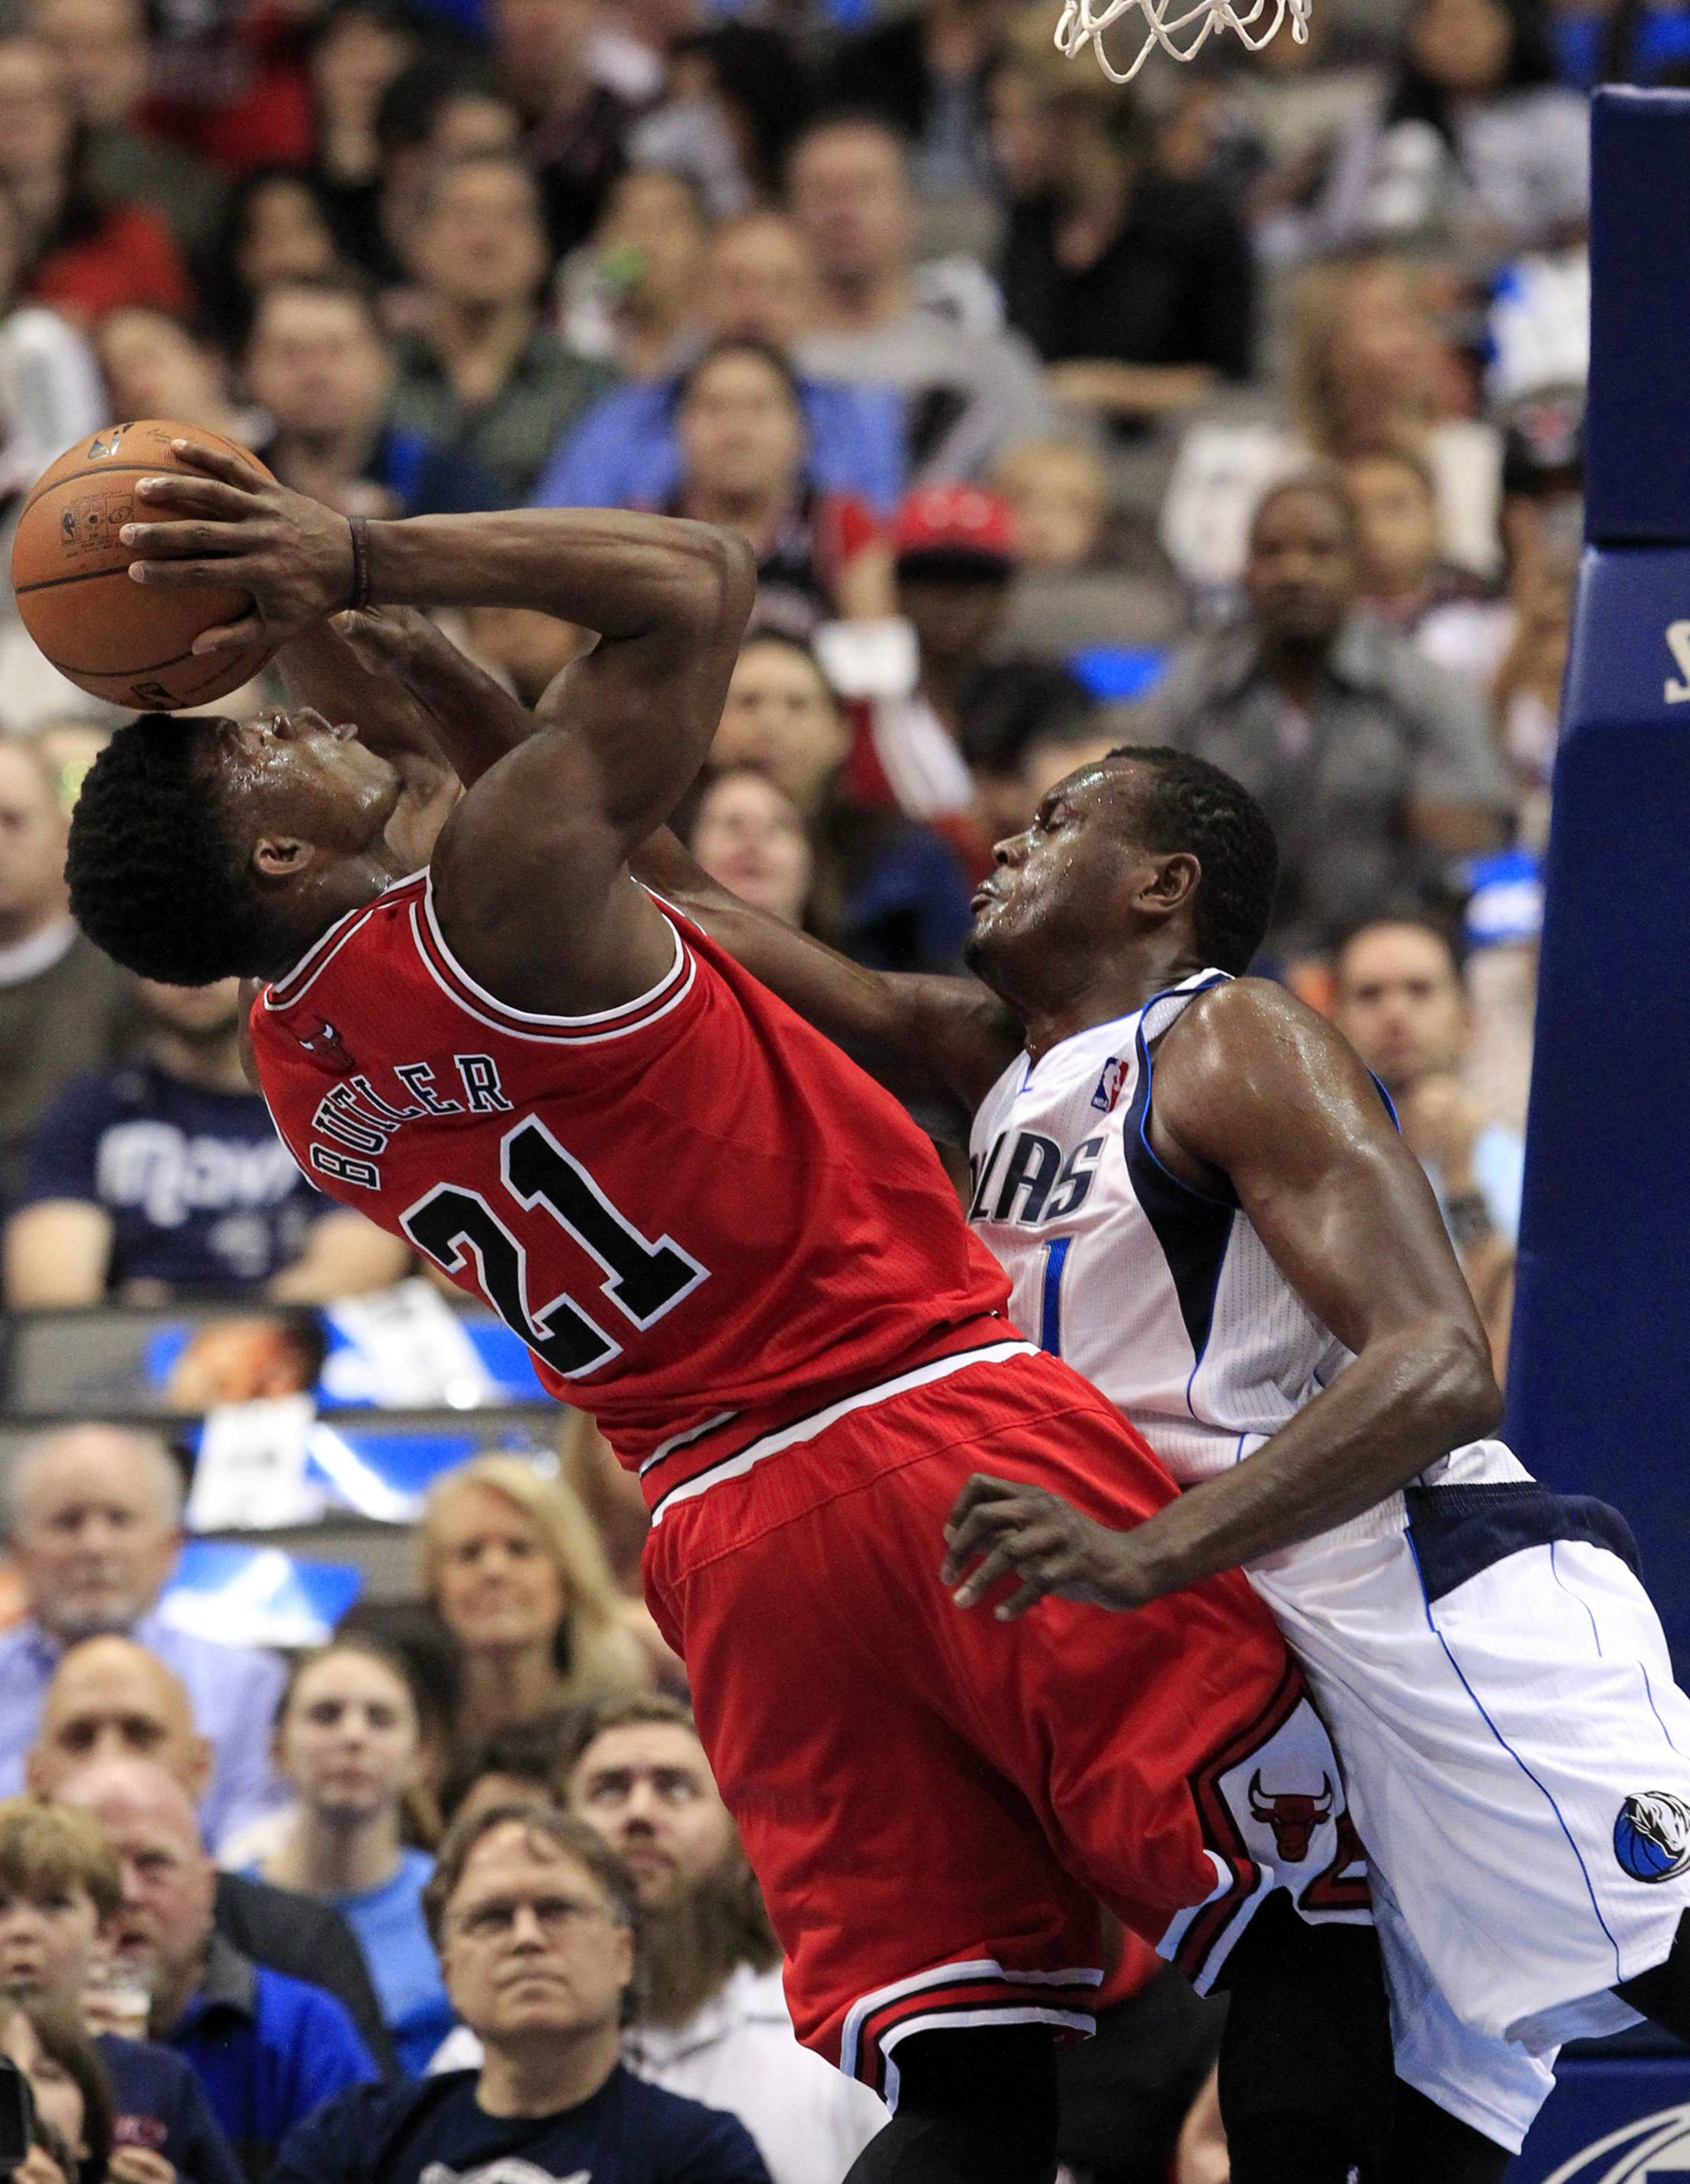 The Bulls' Jimmy Butler draws a foul from Samuel Dalembert of the Mavericks on Friday night. Butler scored 19 points, snared 7 rebounds and made a key blocked shot.